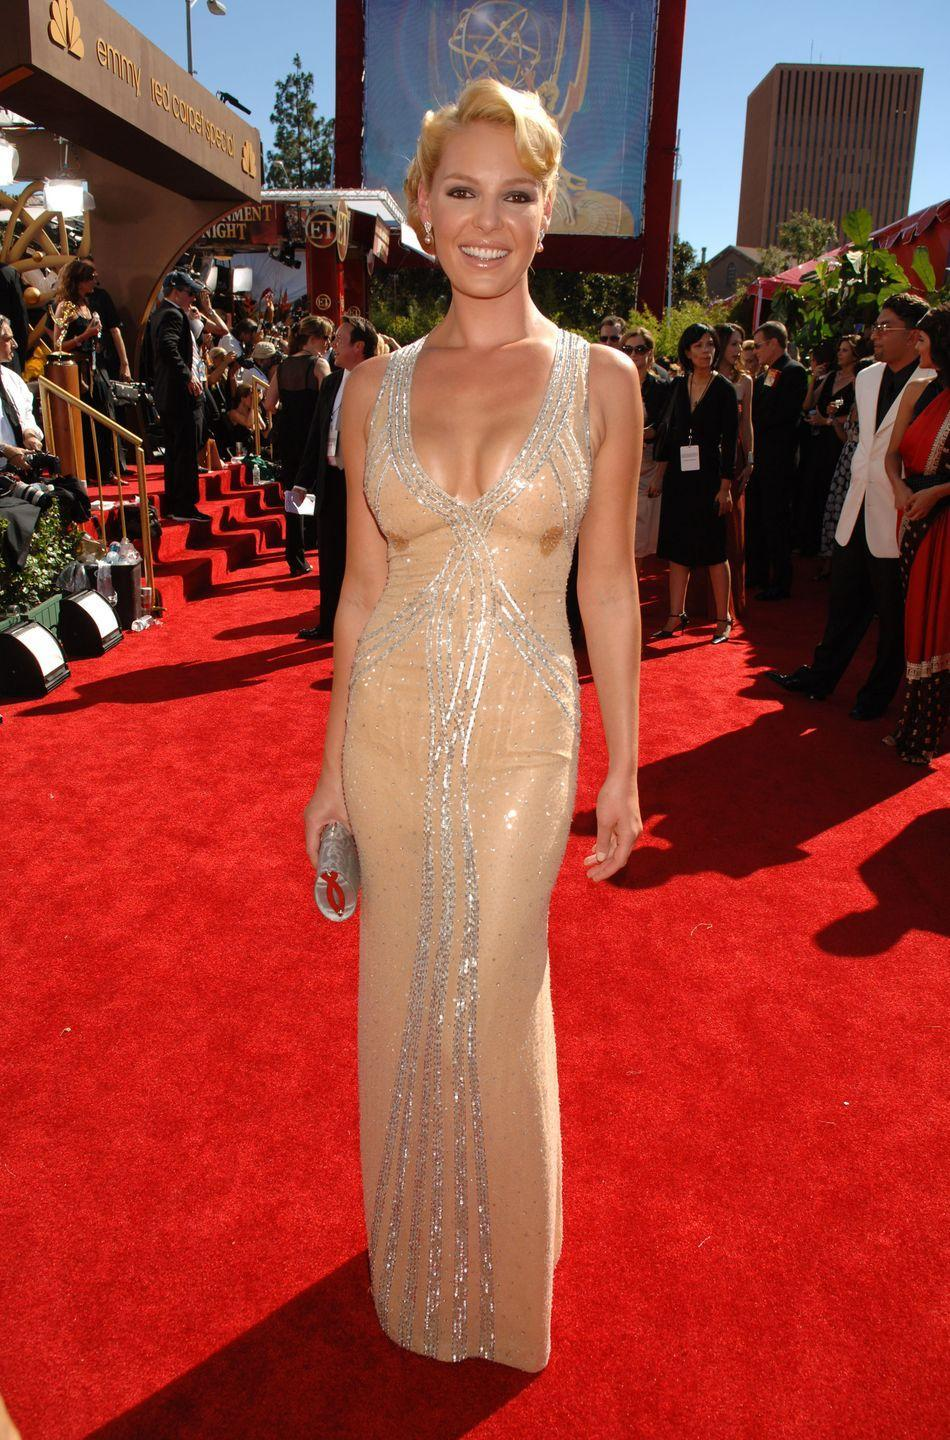 <p>Nude dresses have been a go-to for starlets at the Emmys. The then <em>Grey's Anatomy </em>star looked statuesque in Escada in 2006. </p>